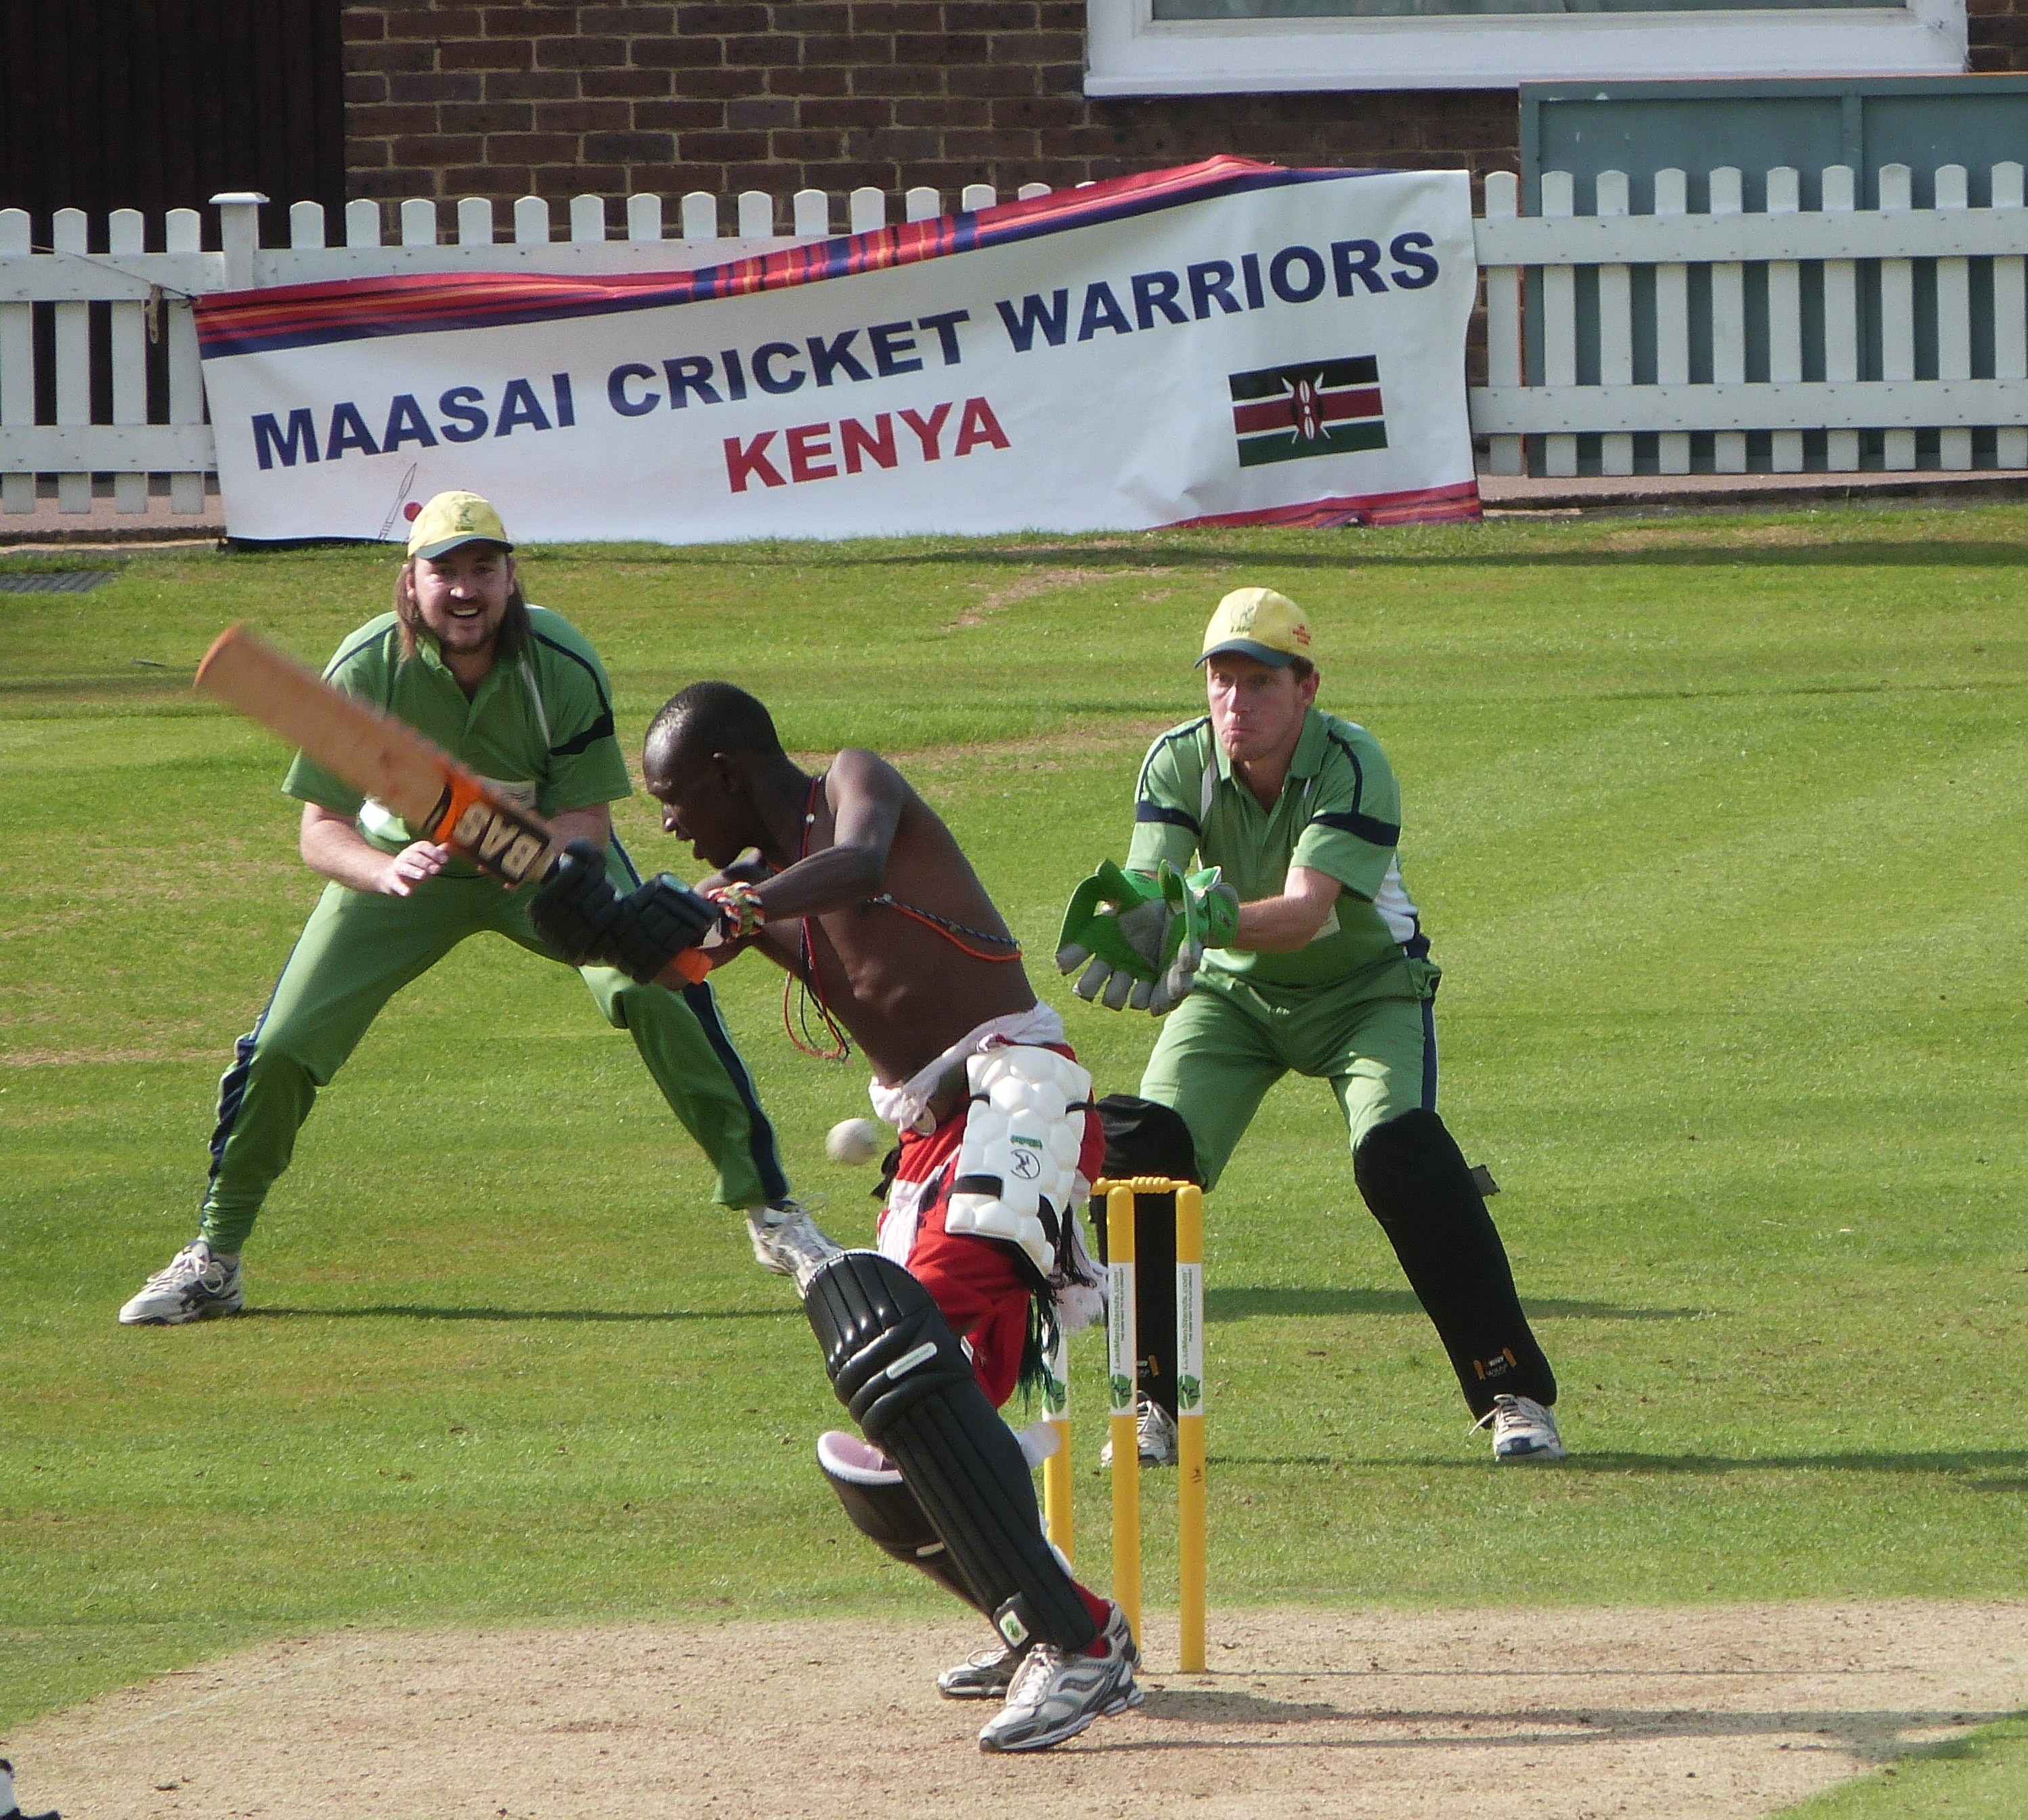 Maasai Warriors play at Lord's in Last Man Stands World Championship finale